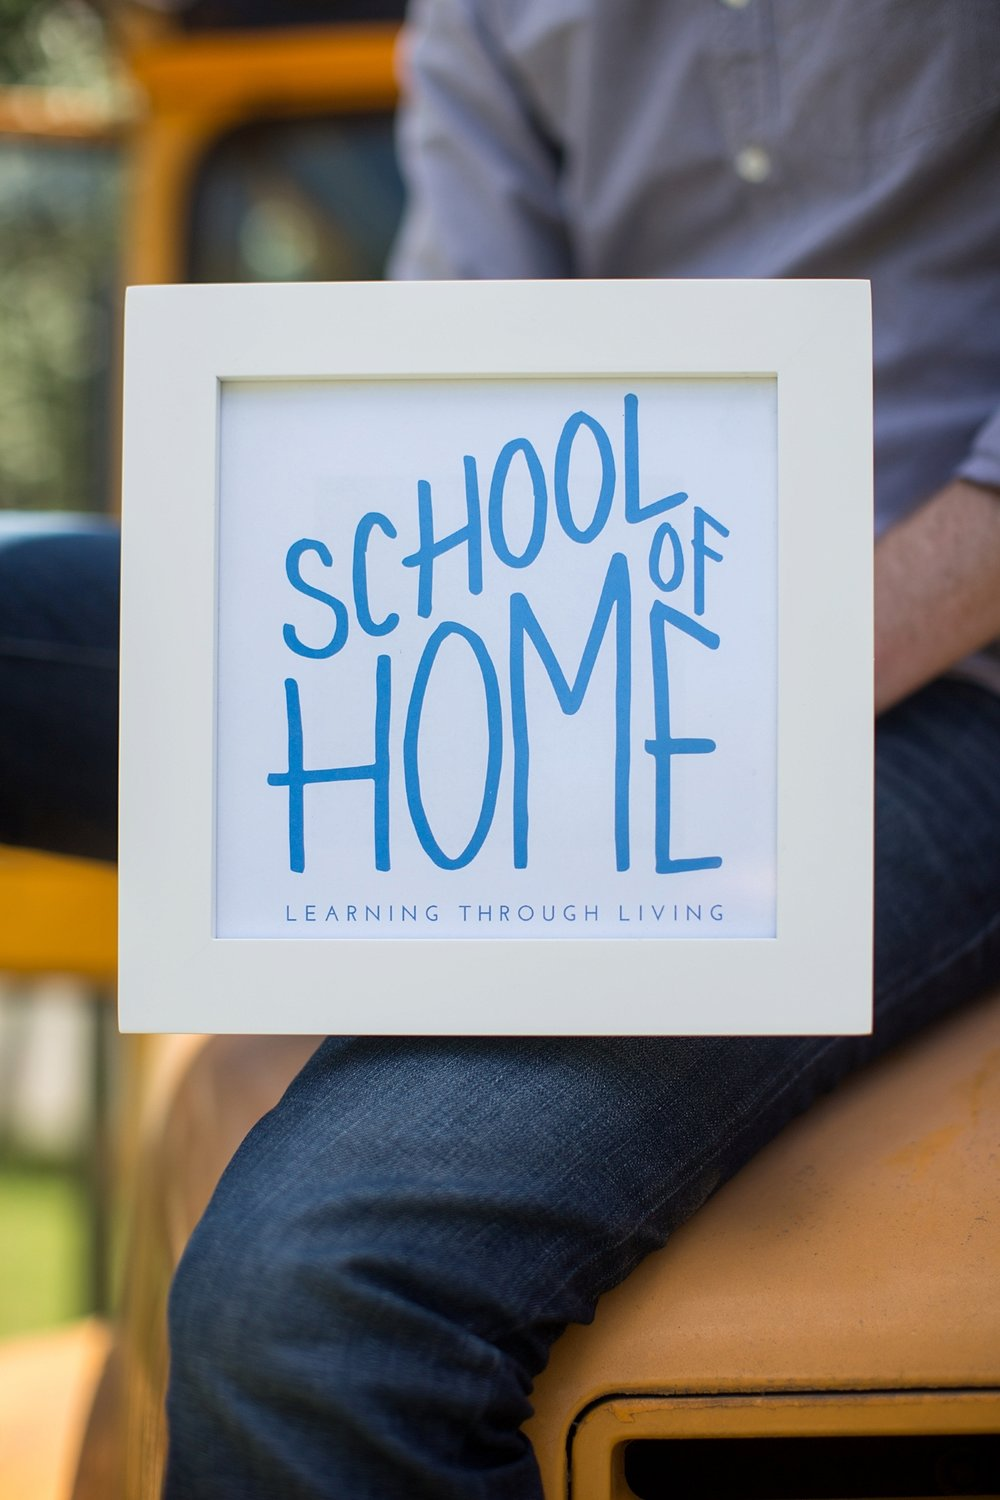 School of Home Lifestyle Platform & Blog | New Brand Naming, Full Brand Story Identity, Photoshoot and Website